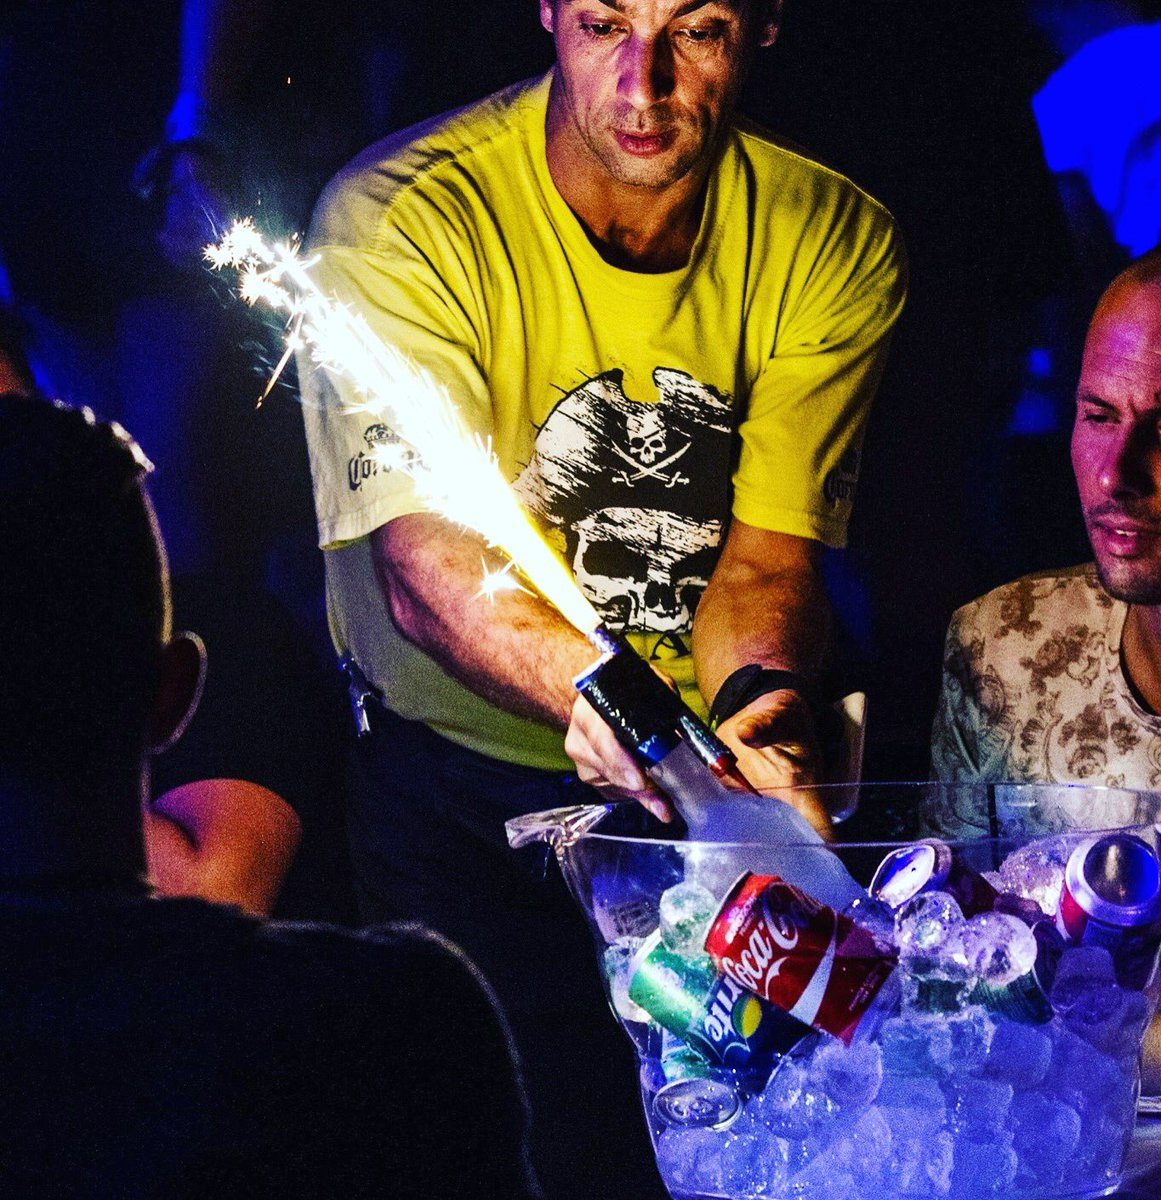 Celebrate in style at #Reloaded with Bottle Service! Pre-book online &amp; save 25% on theatre price! Standard - 75€ / VIP - 112.50€ #magaluf  <br>http://pic.twitter.com/5JTBFM5fGK